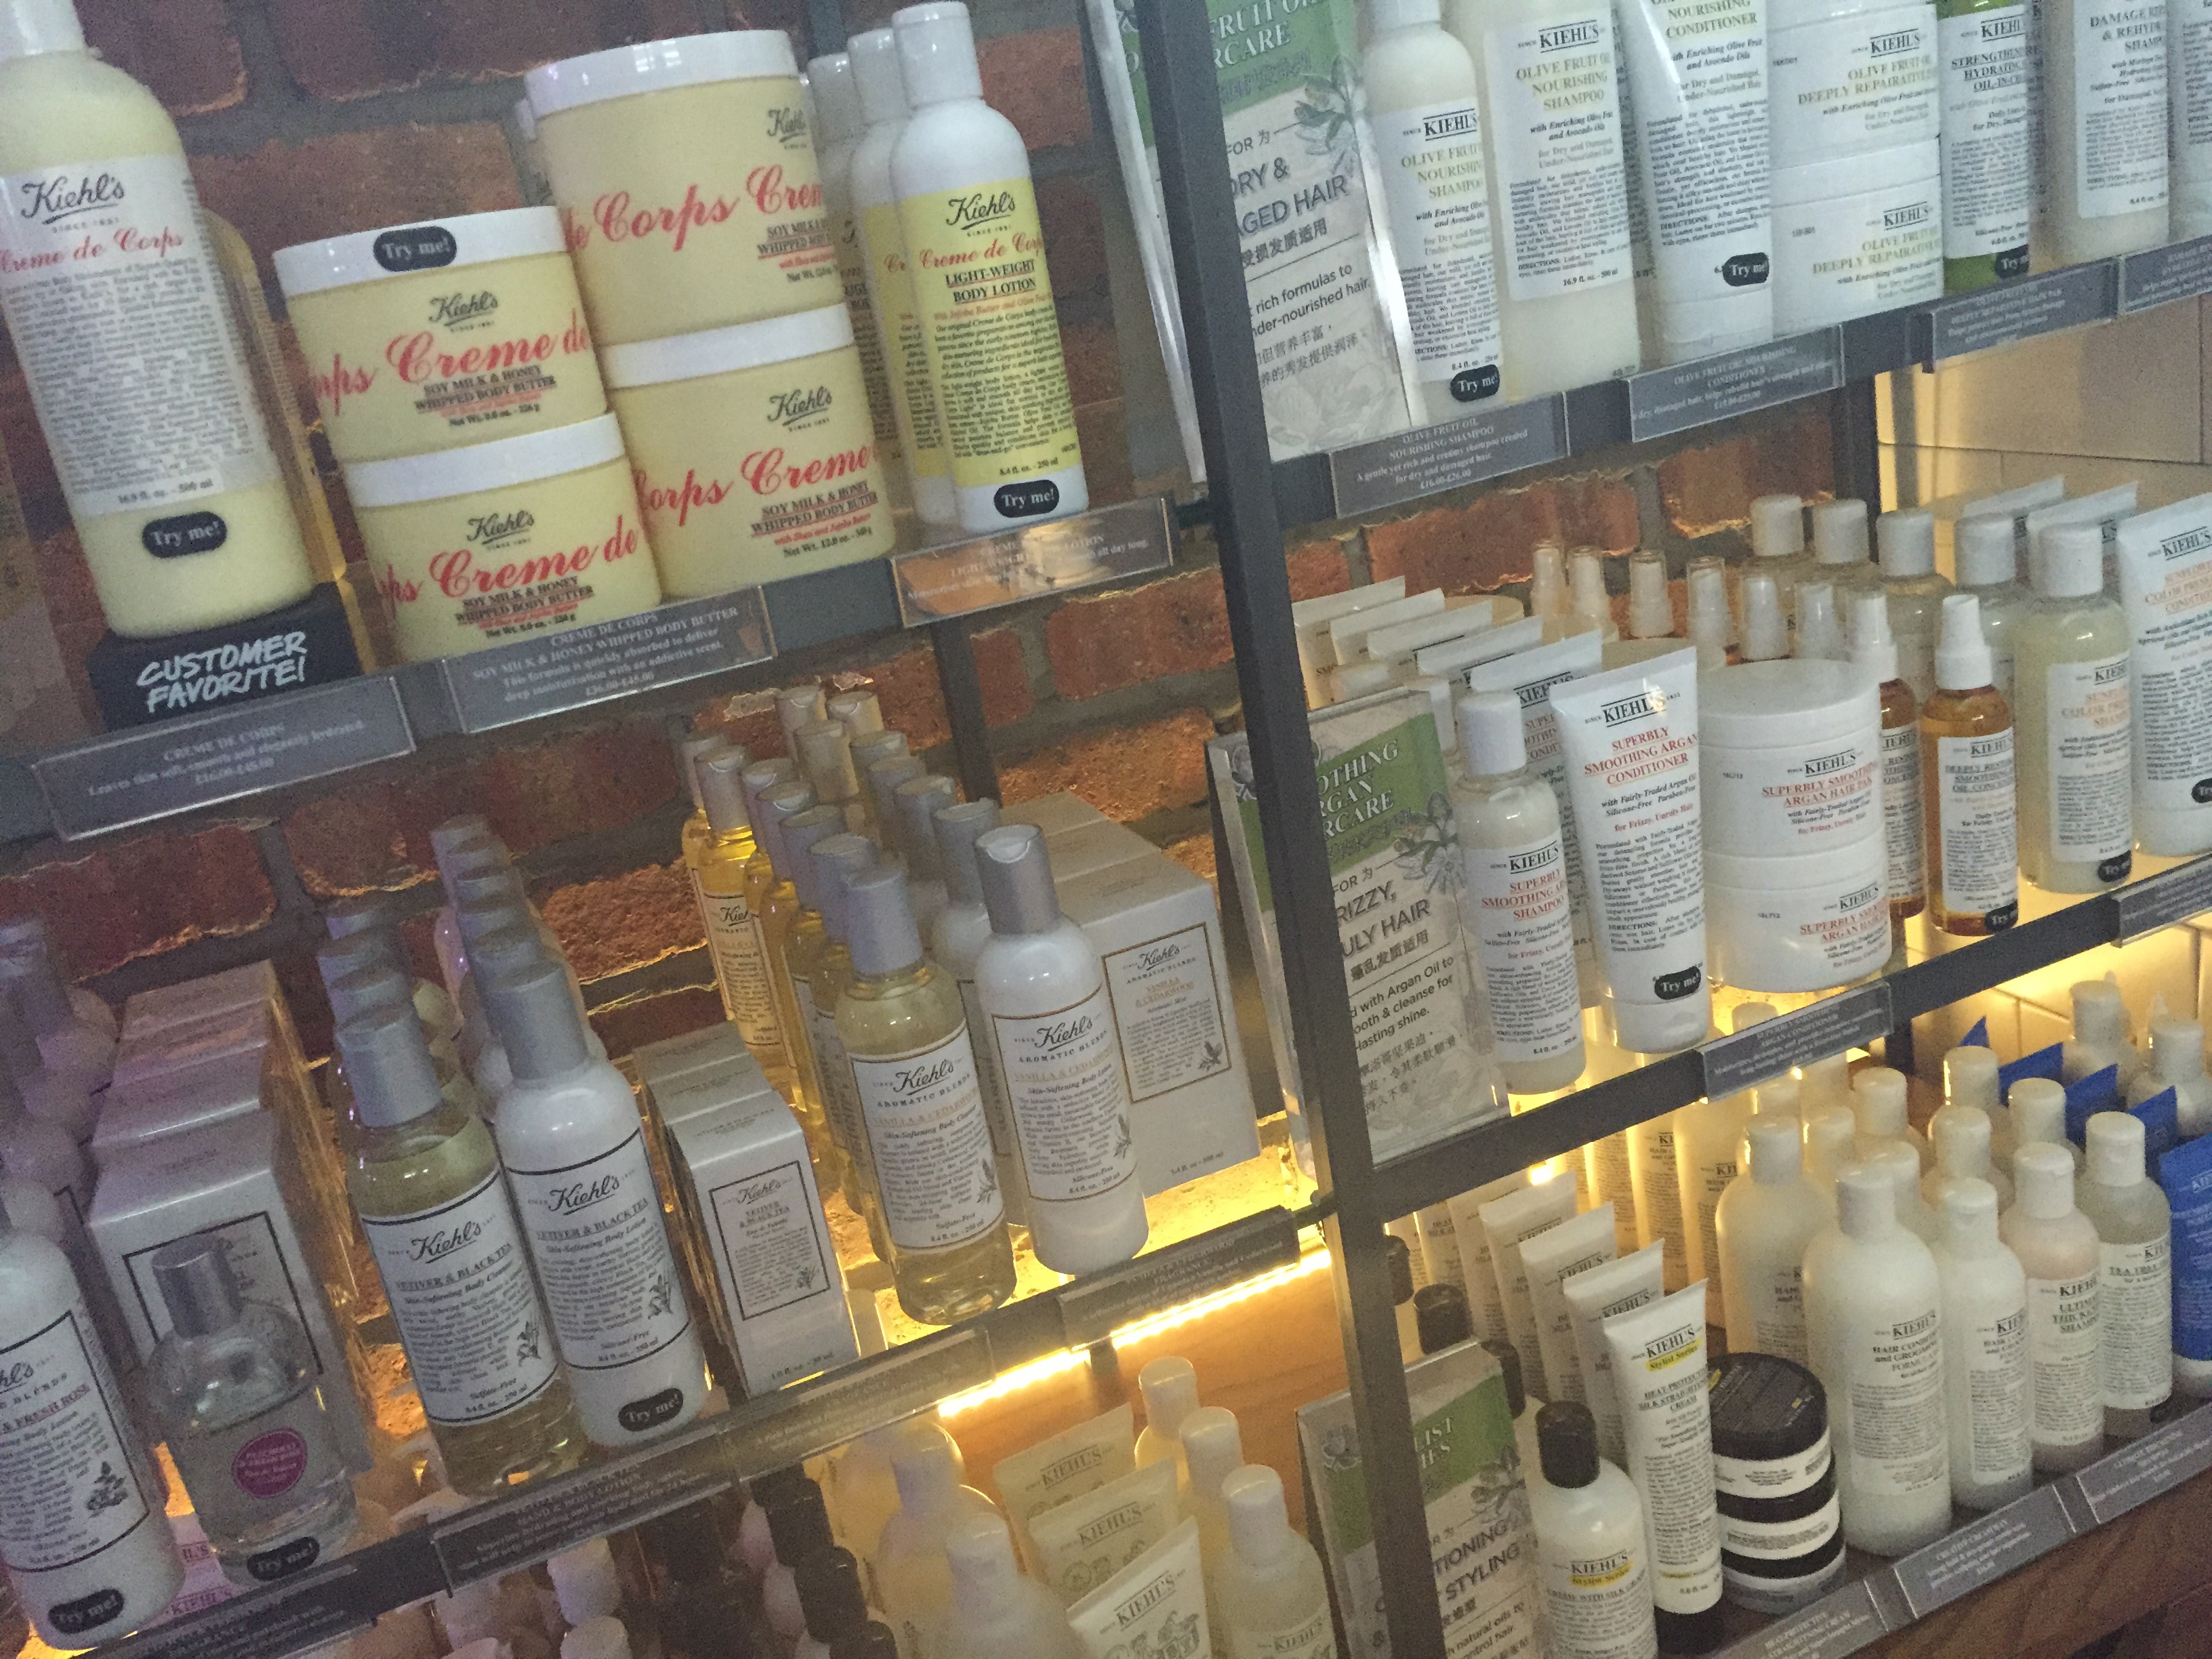 We were in the shop so every now and then I broke away to sneak a peak at the fabulous products